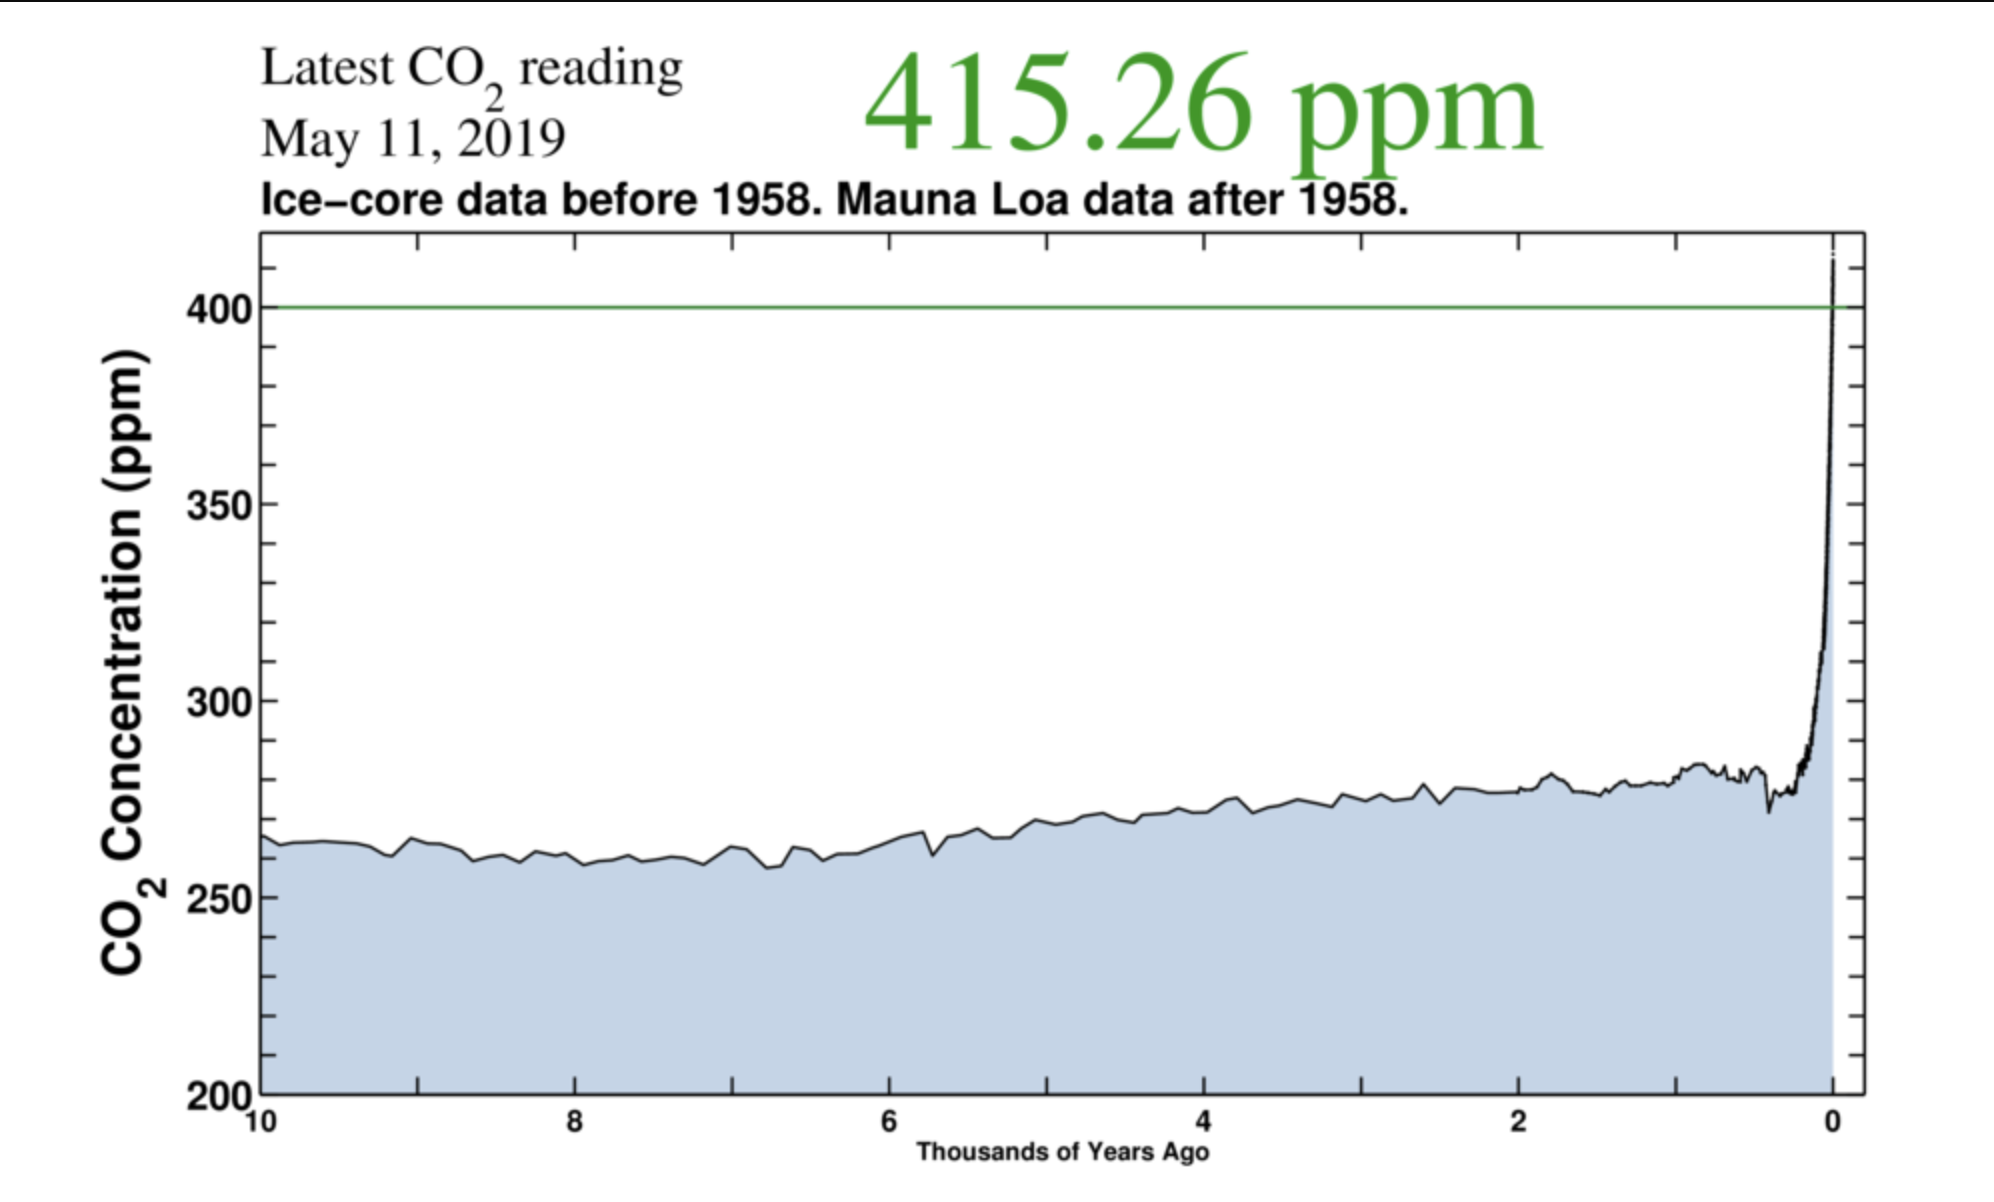 CO2 emissions over time as recorded by measurements of Arctic ice and the Mauna Loa Observatory.